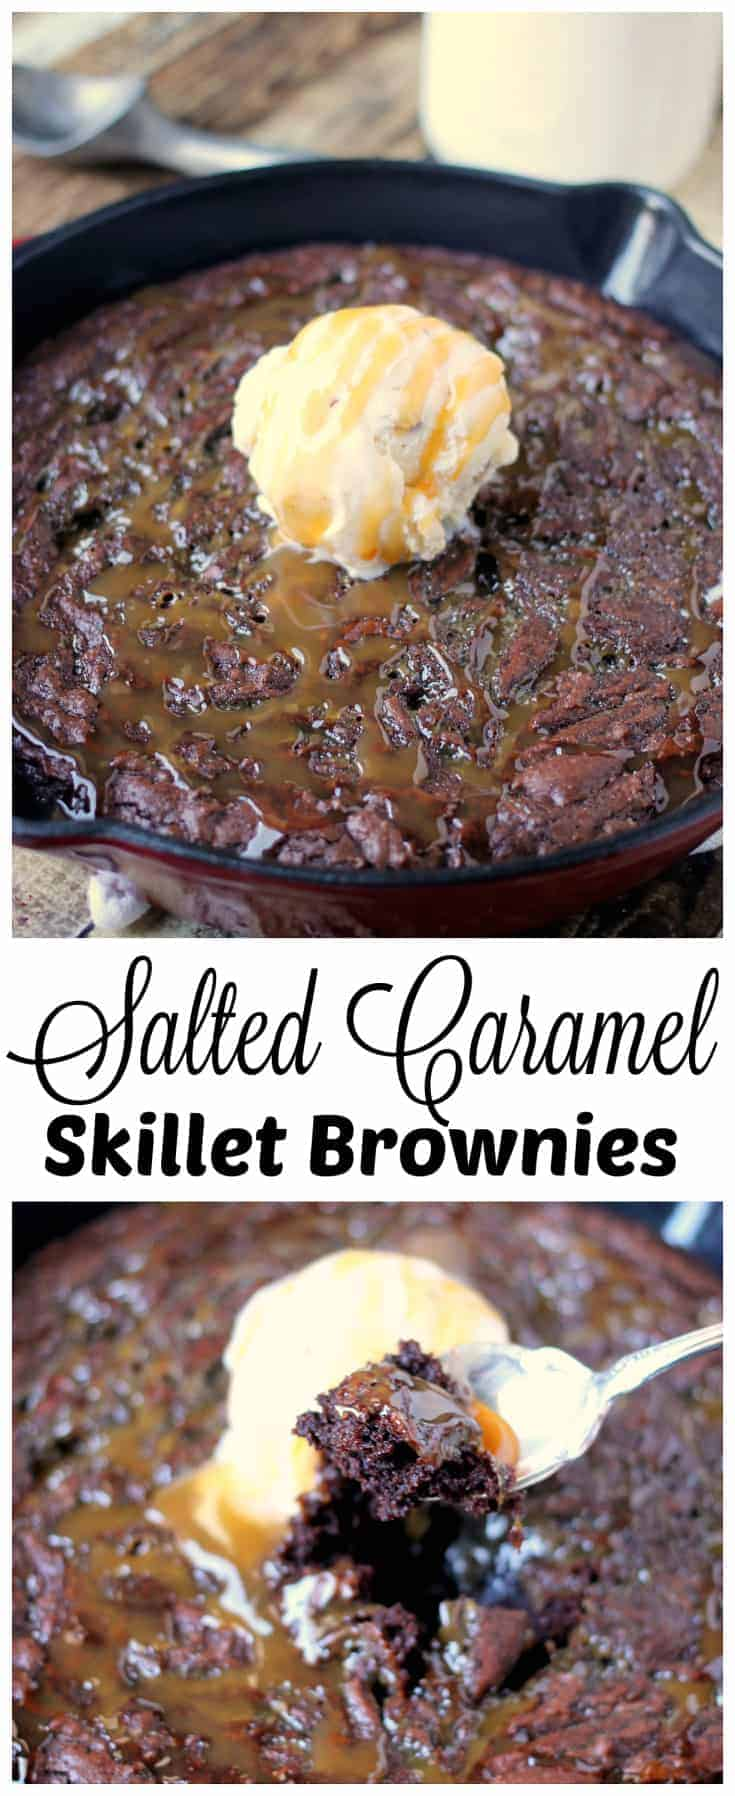 Salted Caramel Skillet Brownies Recipe